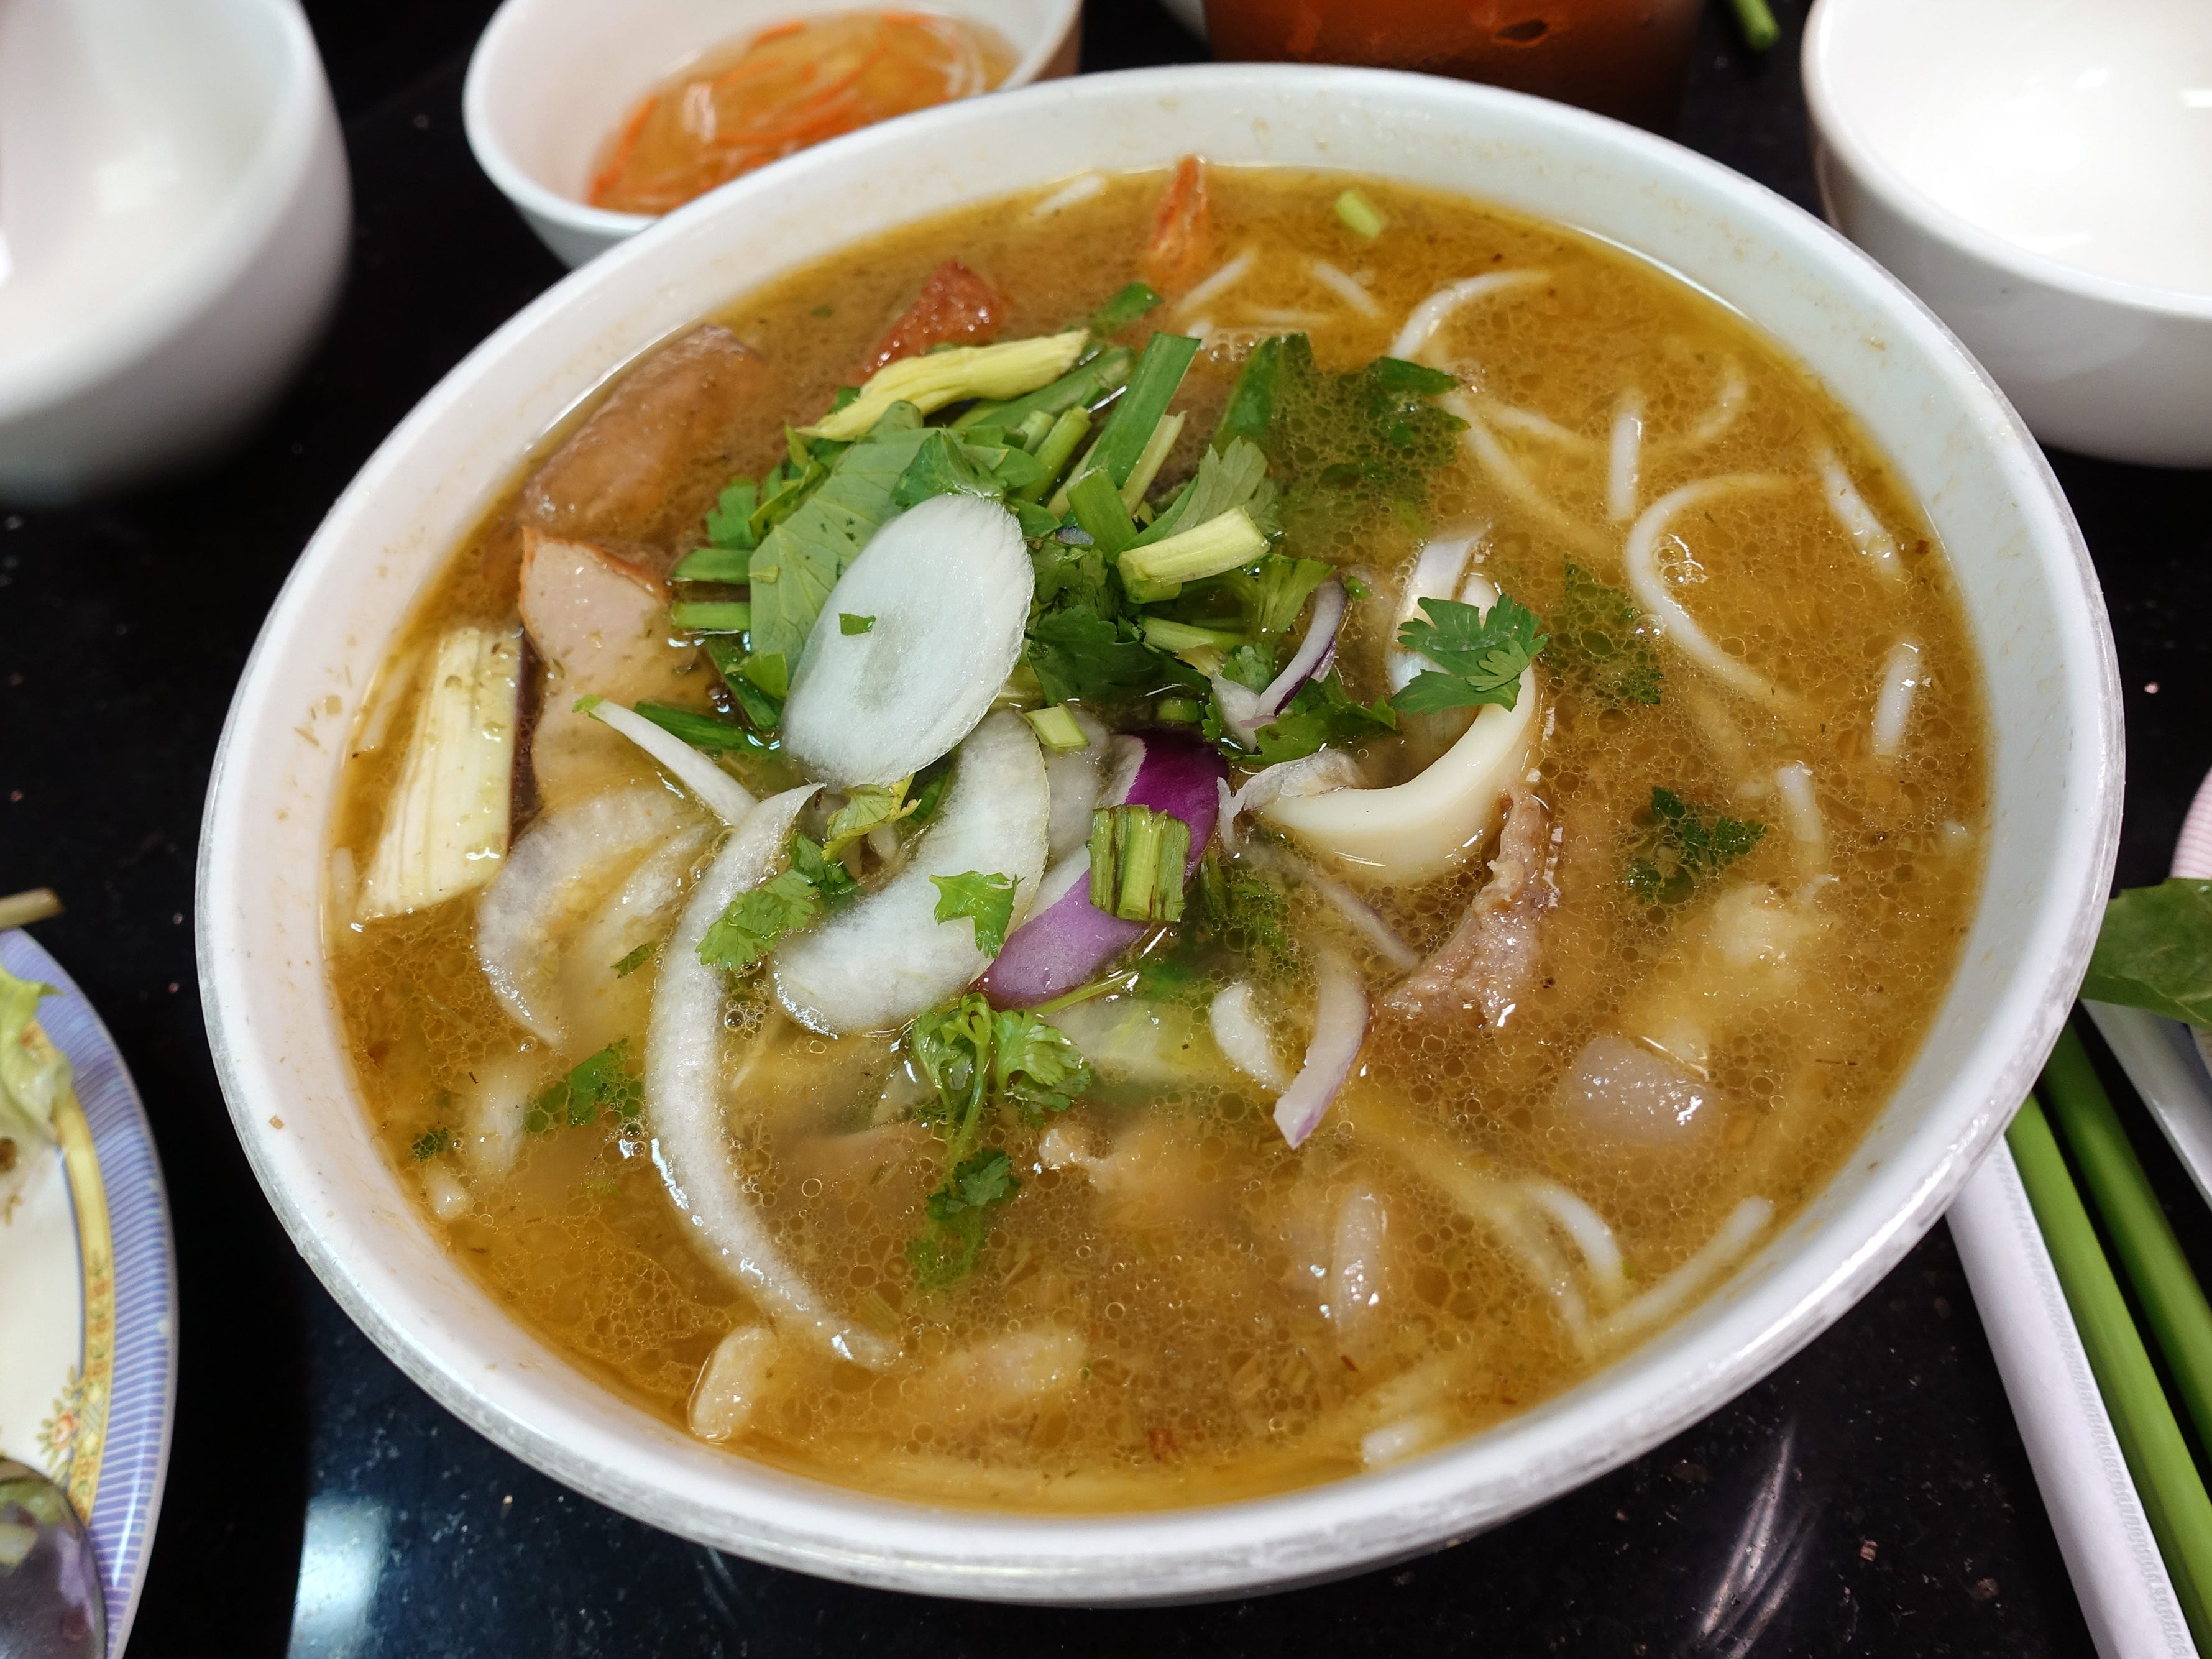 Bun mam (fermented fish noodle soup) at Pho Thanh in Phoenix.